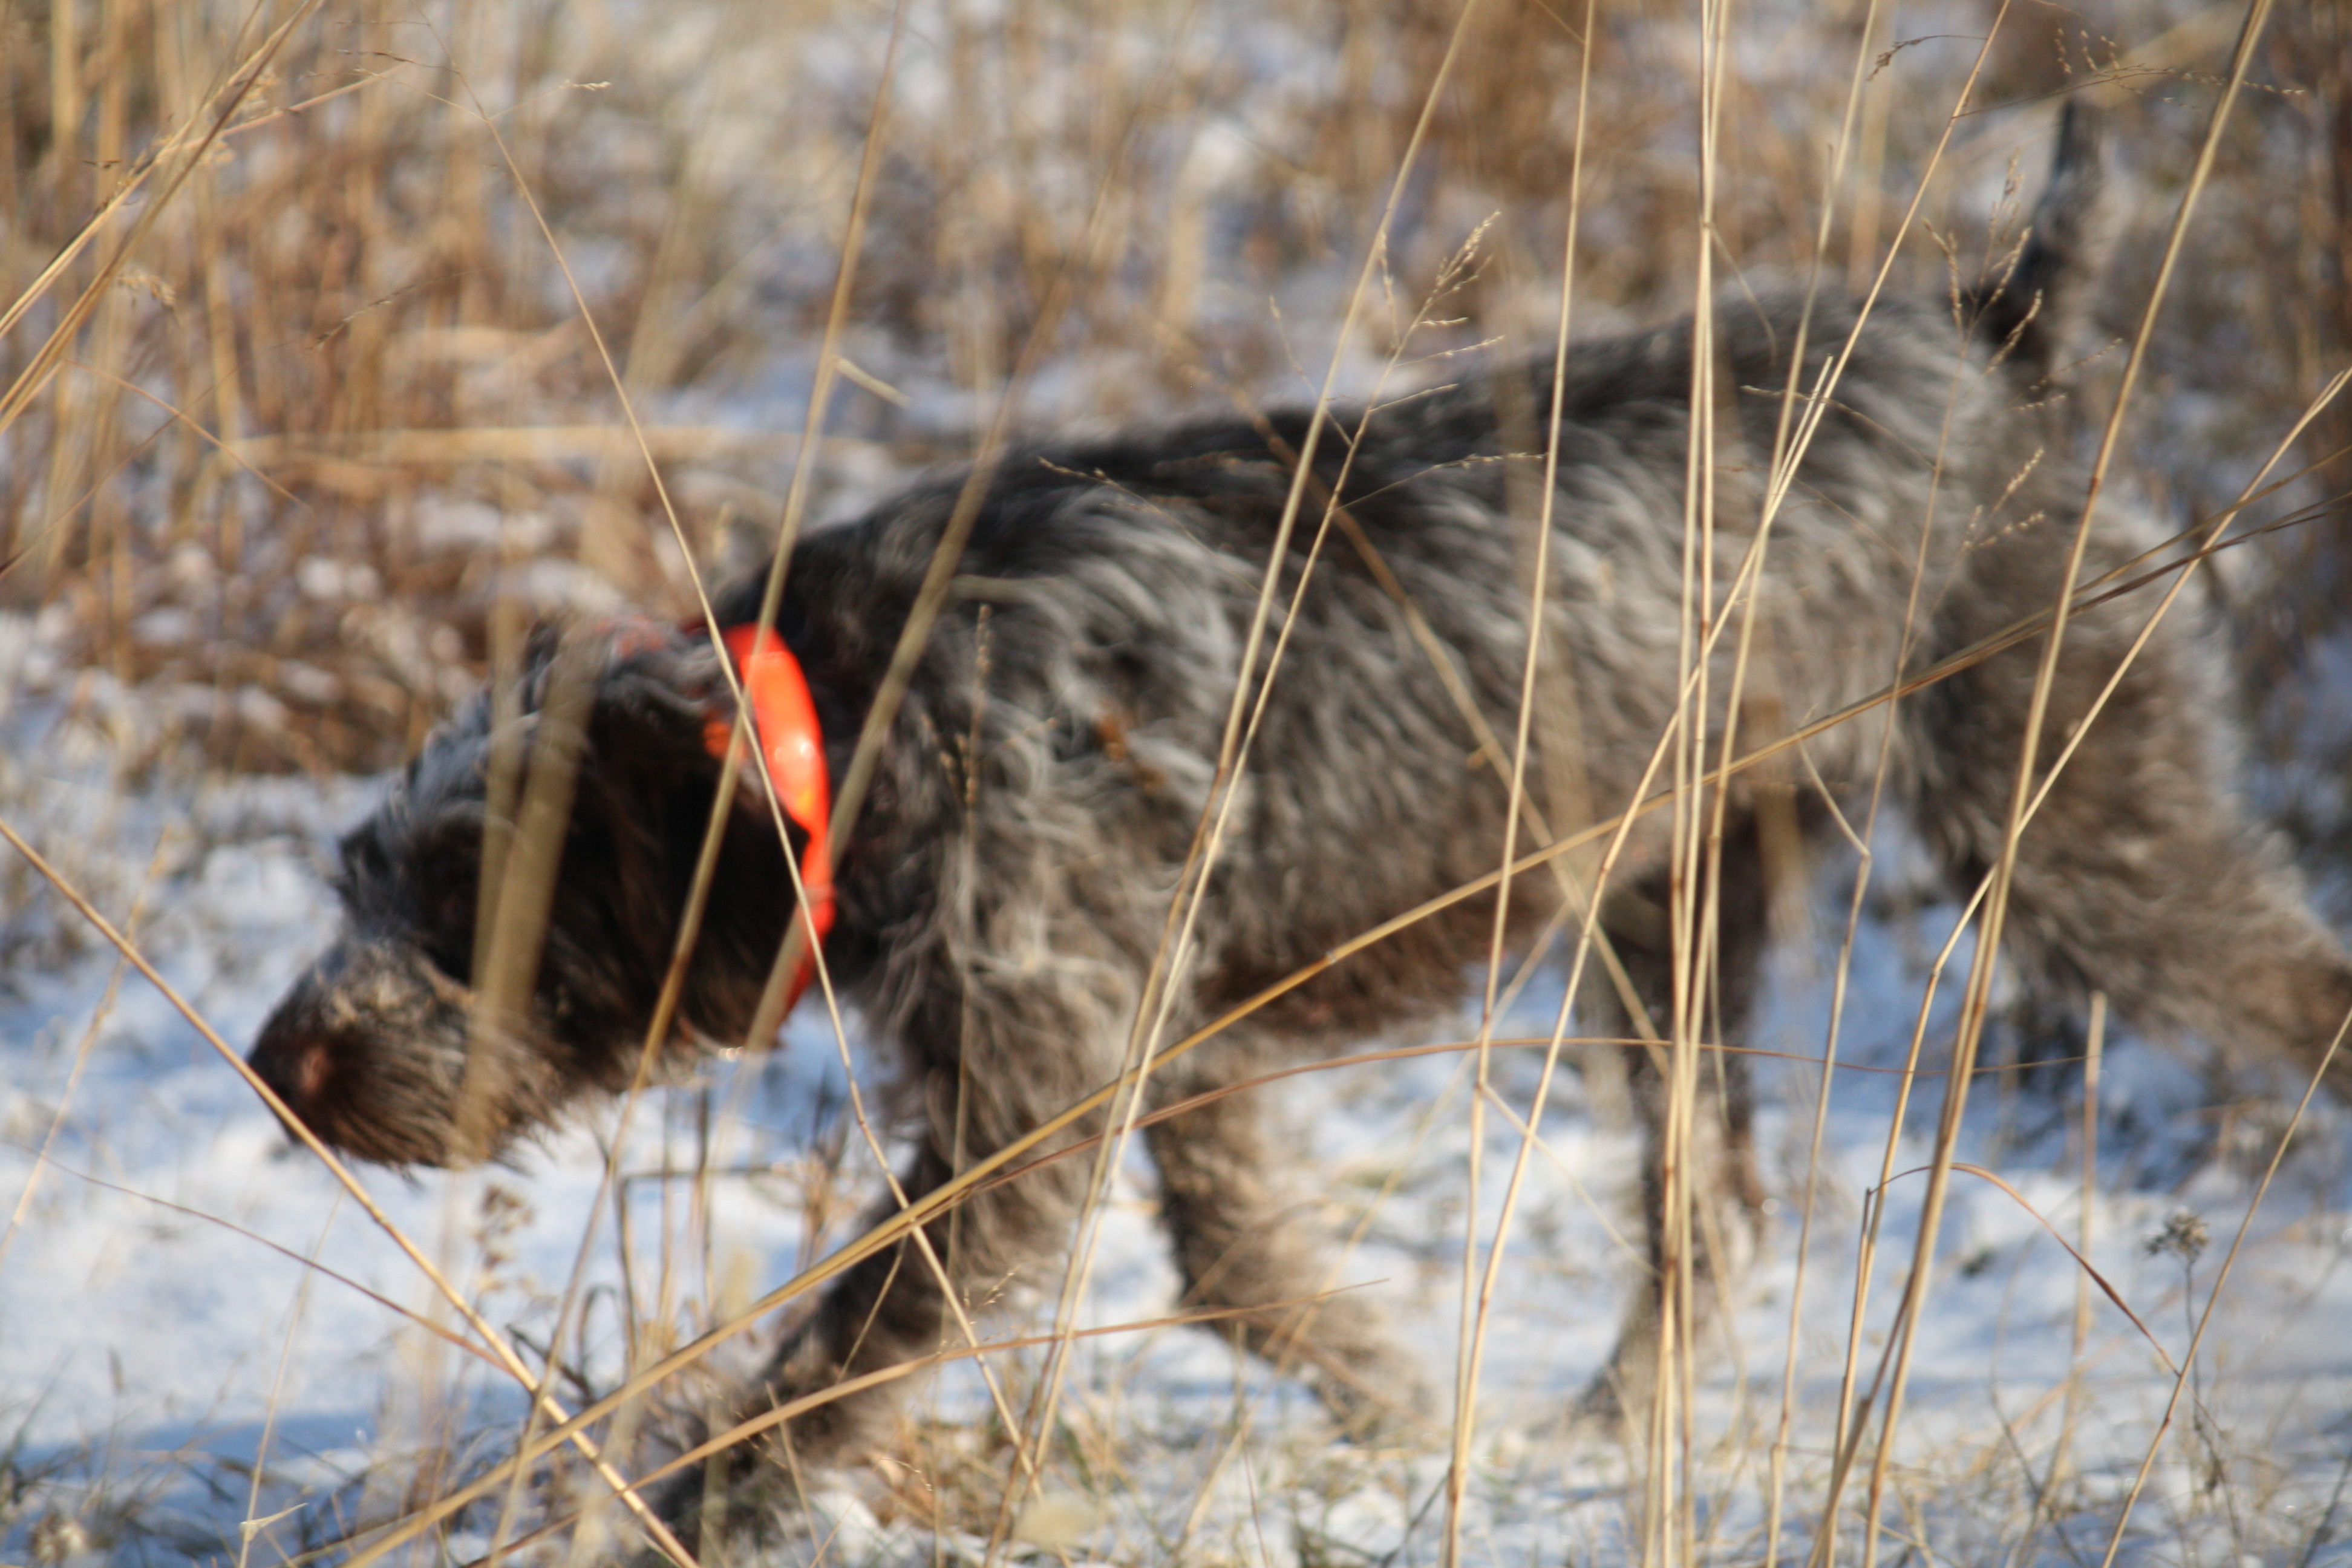 Walking Wirehaired Pointing Griffon dog wallpaper